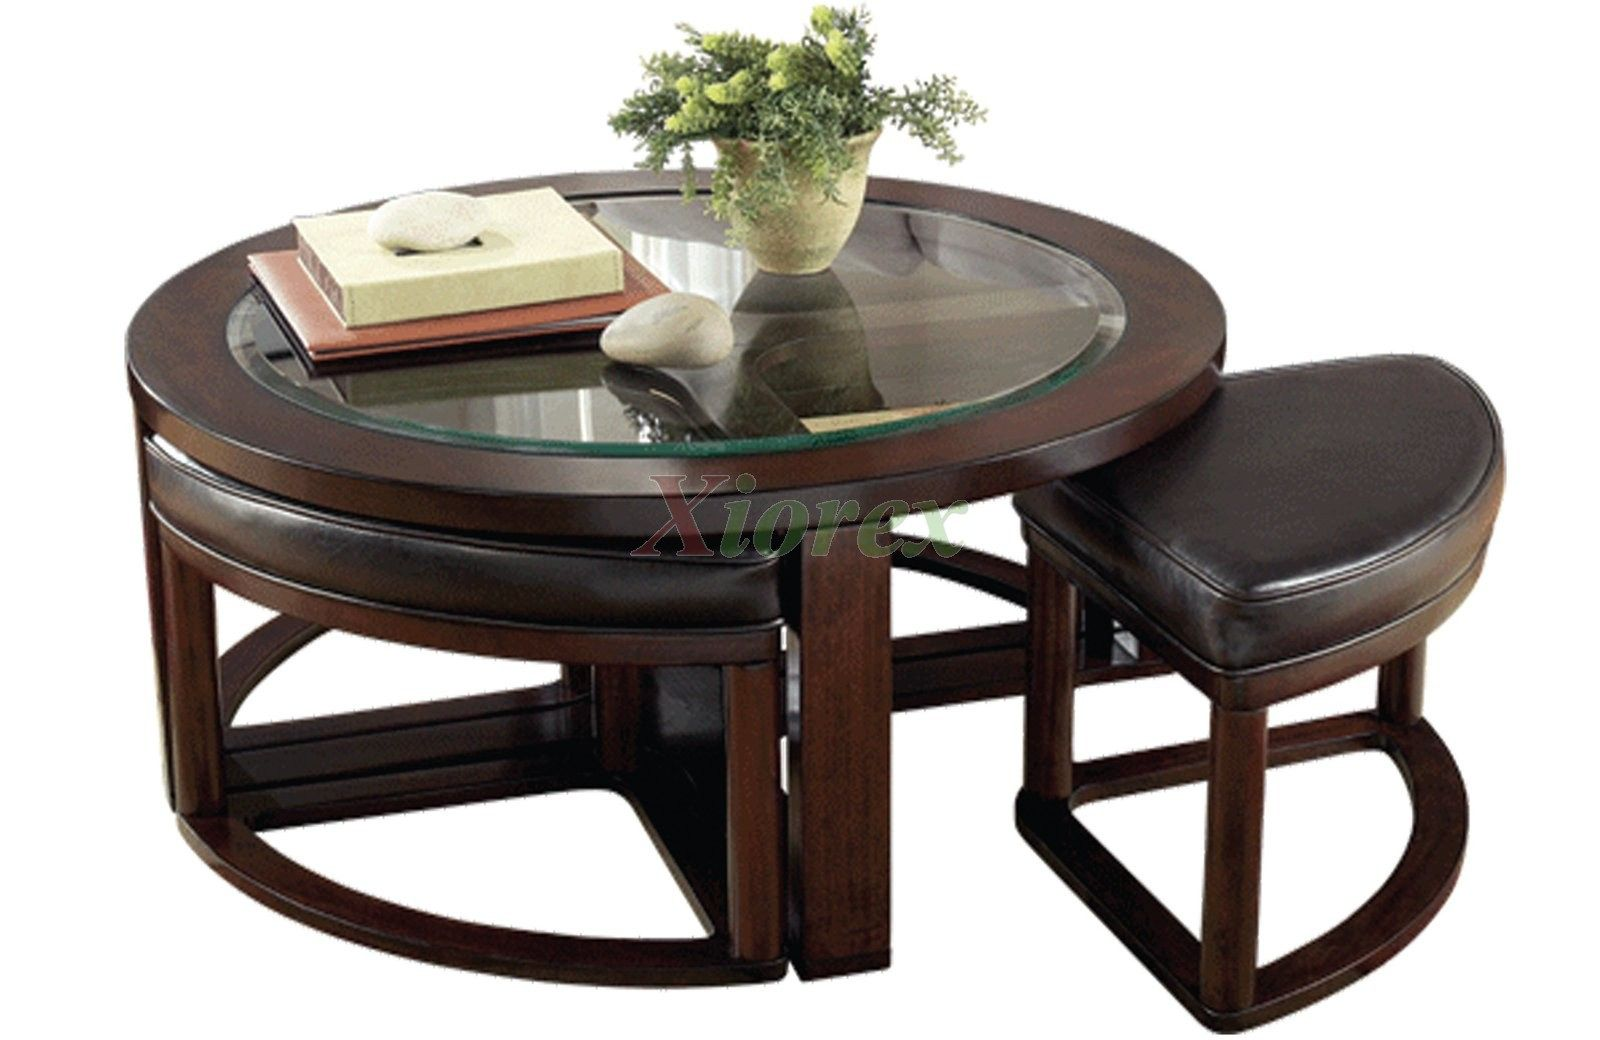 20 Round Coffee Table with Stools Underneath Furniture for Home